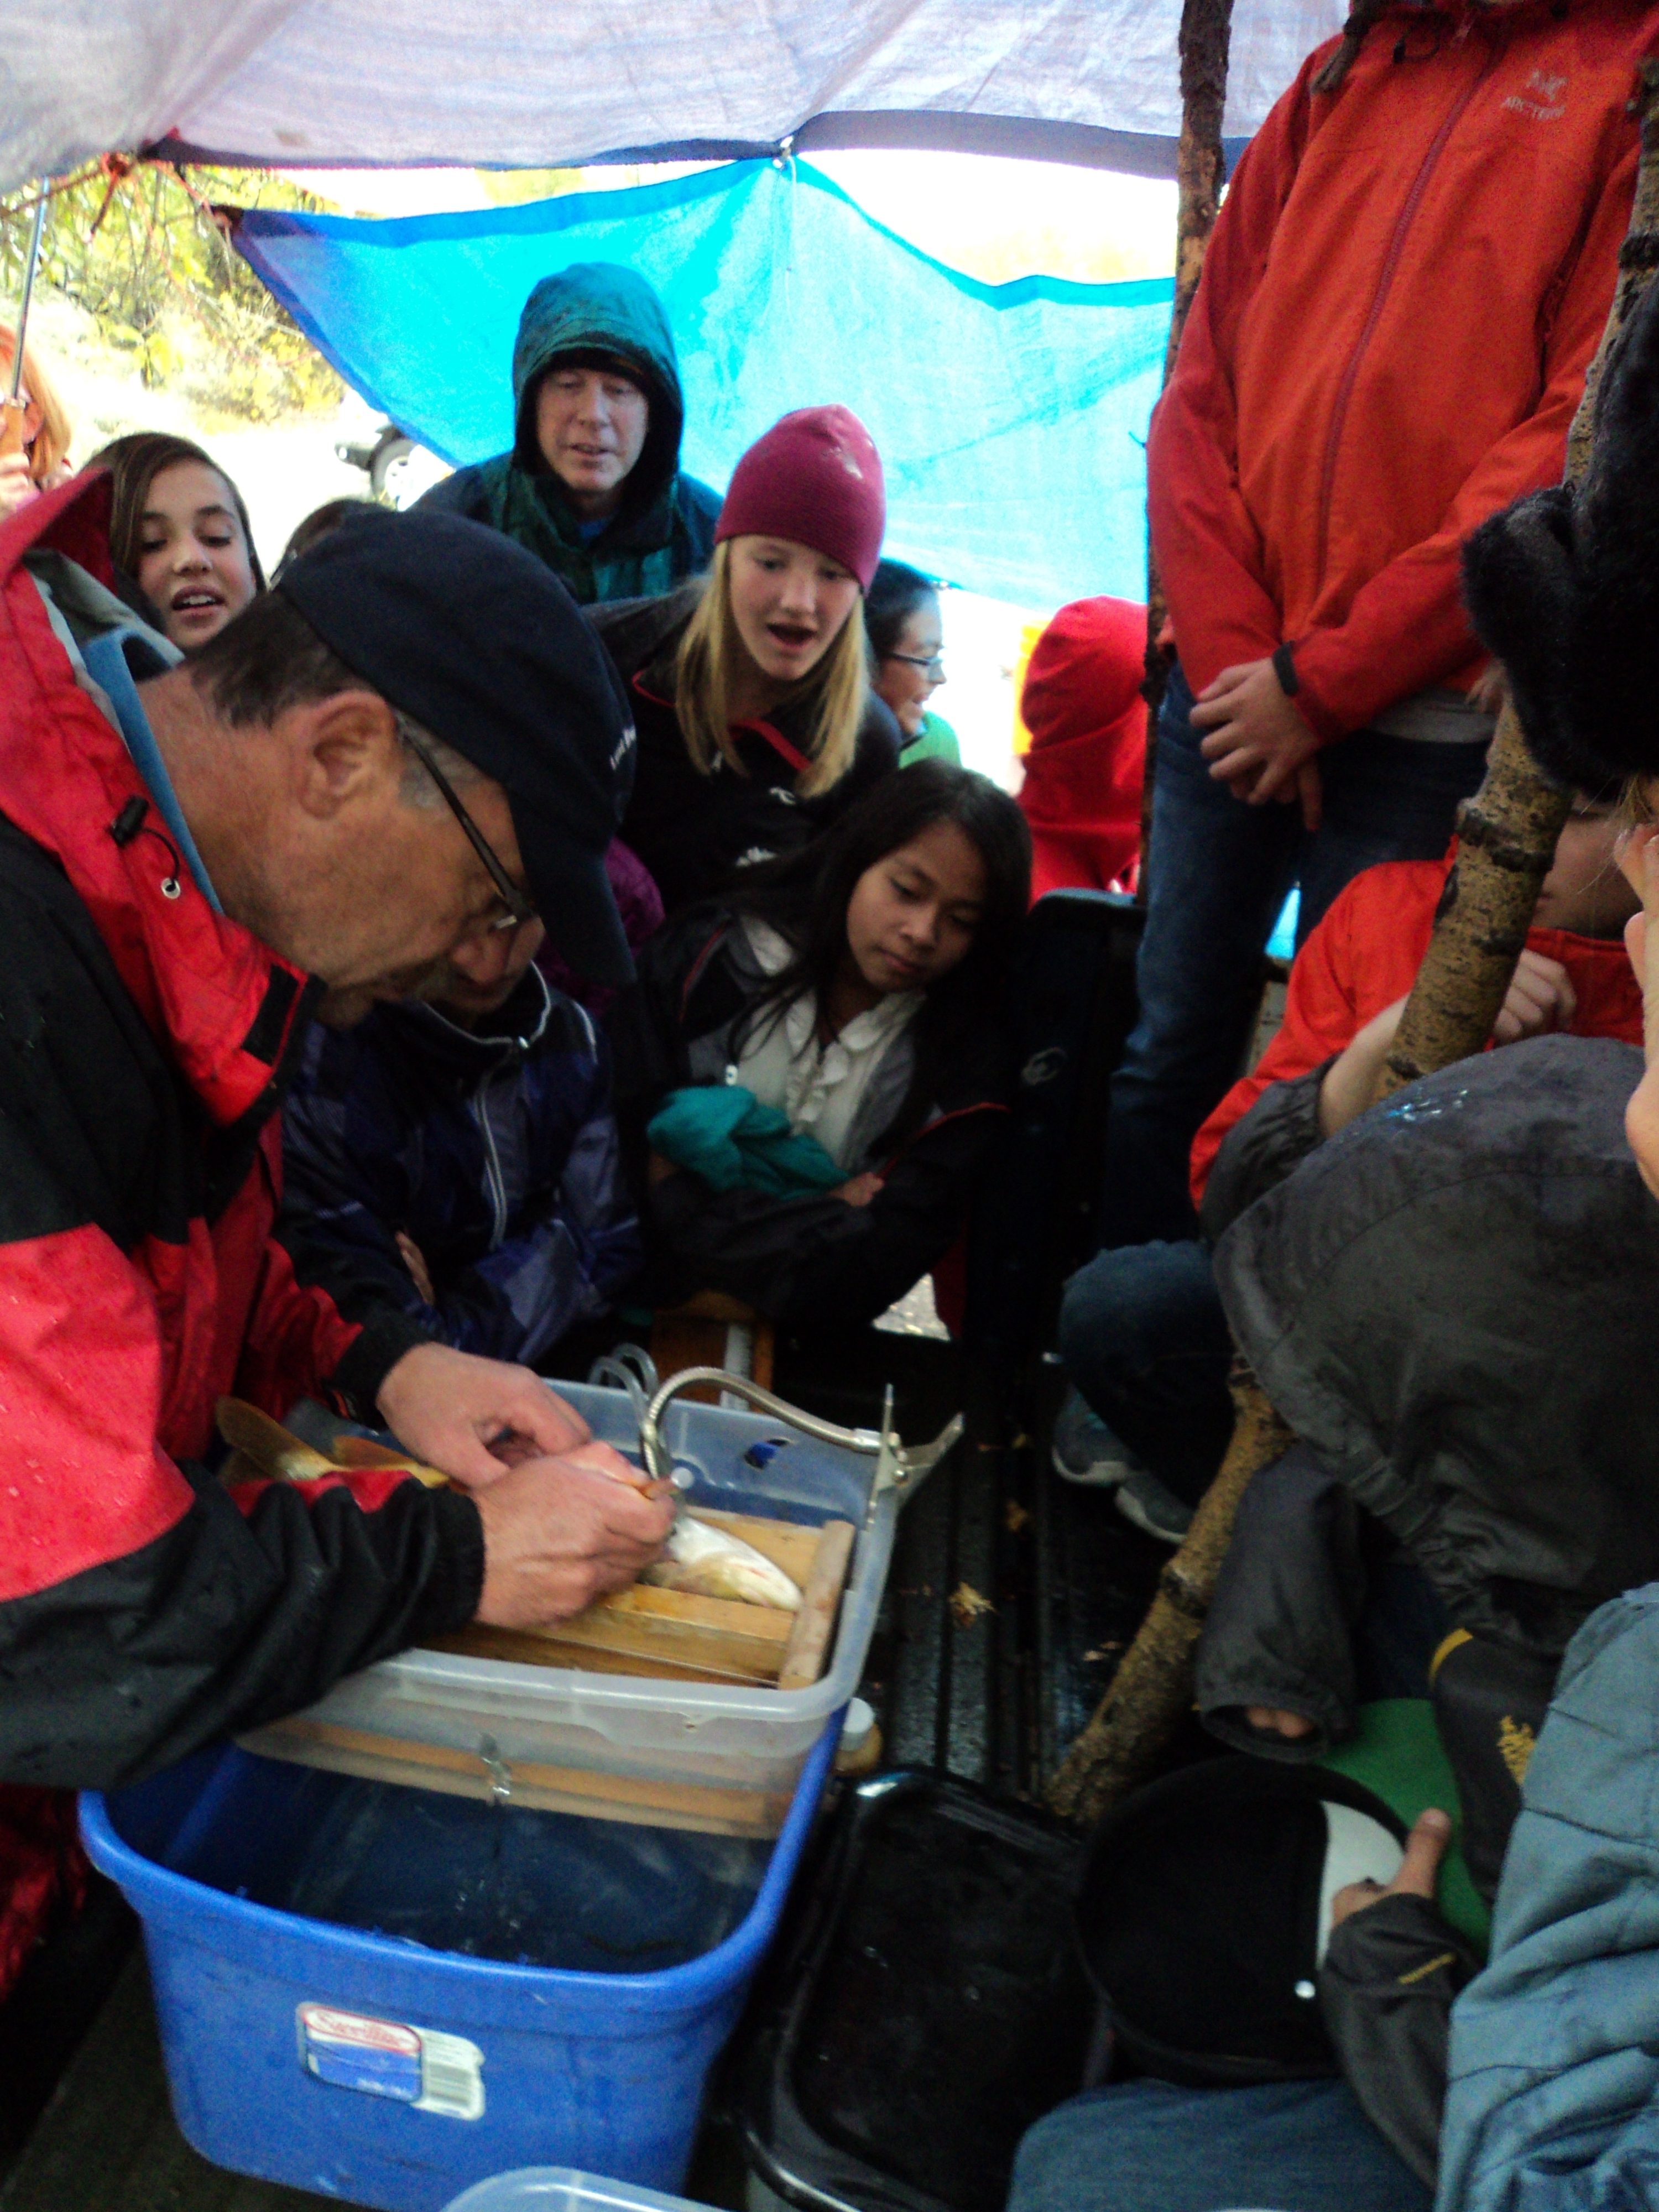 Students look on with amazement as a biologist implants a radio tracking device into a captured trout.